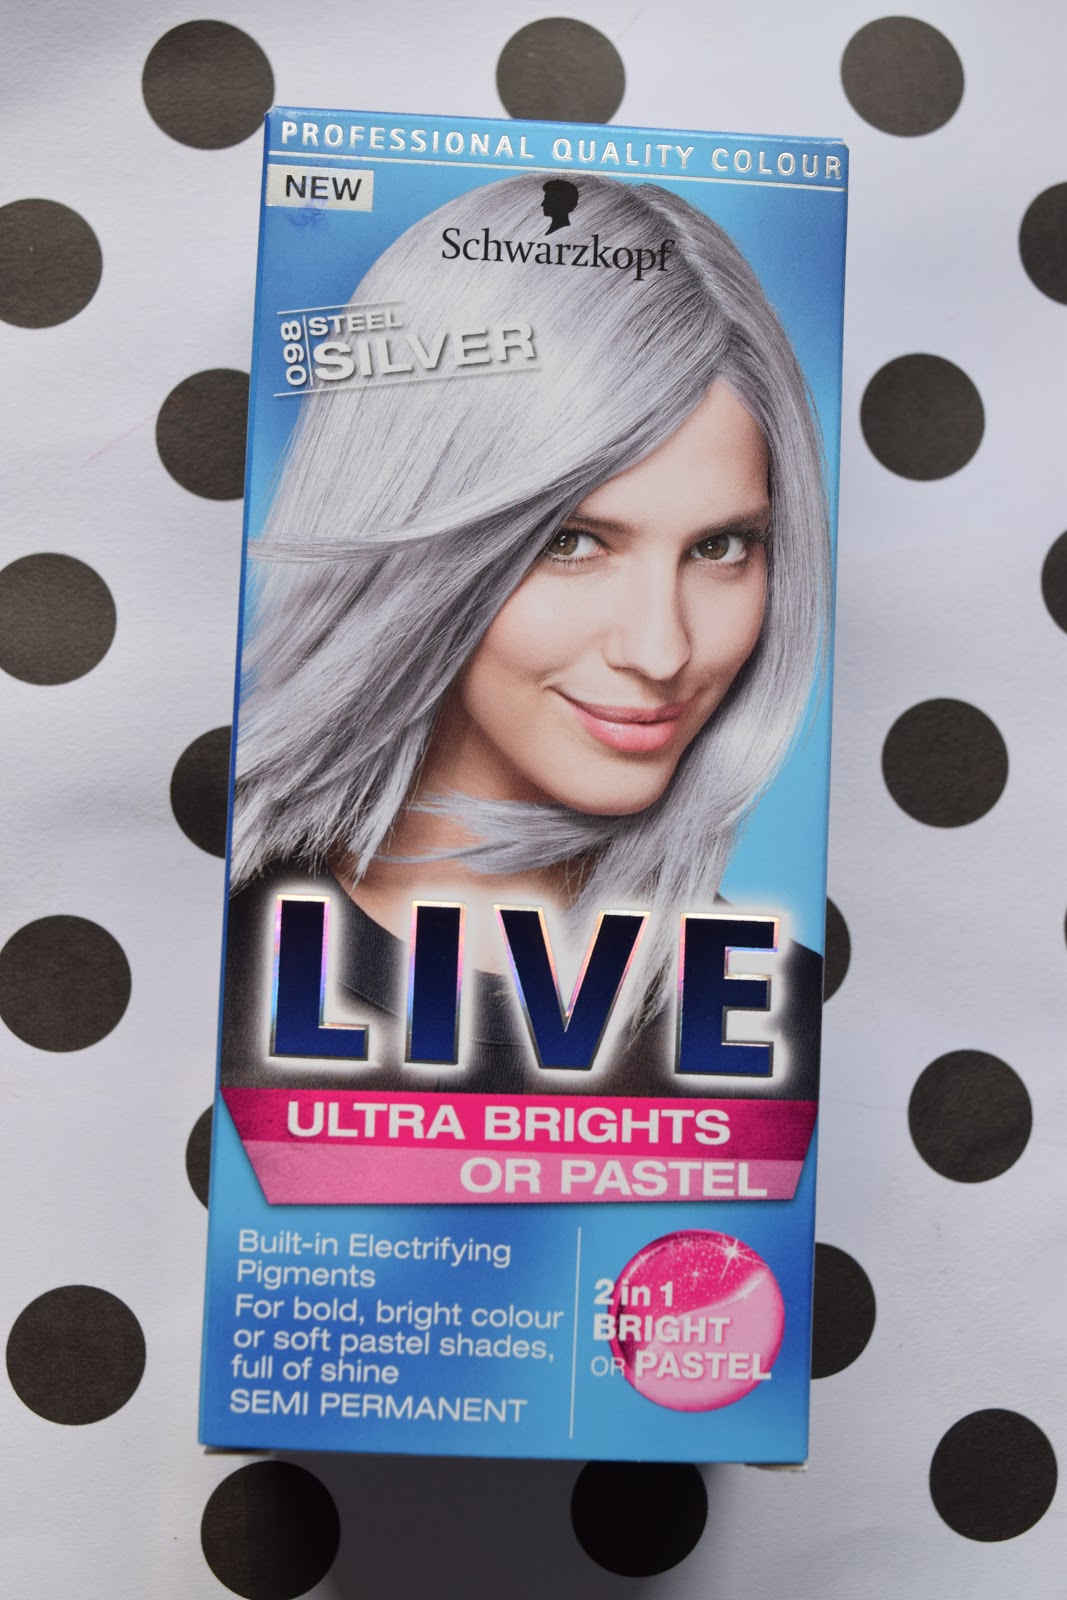 Schwarzkopf Live Steel Silver 098 review and before and after